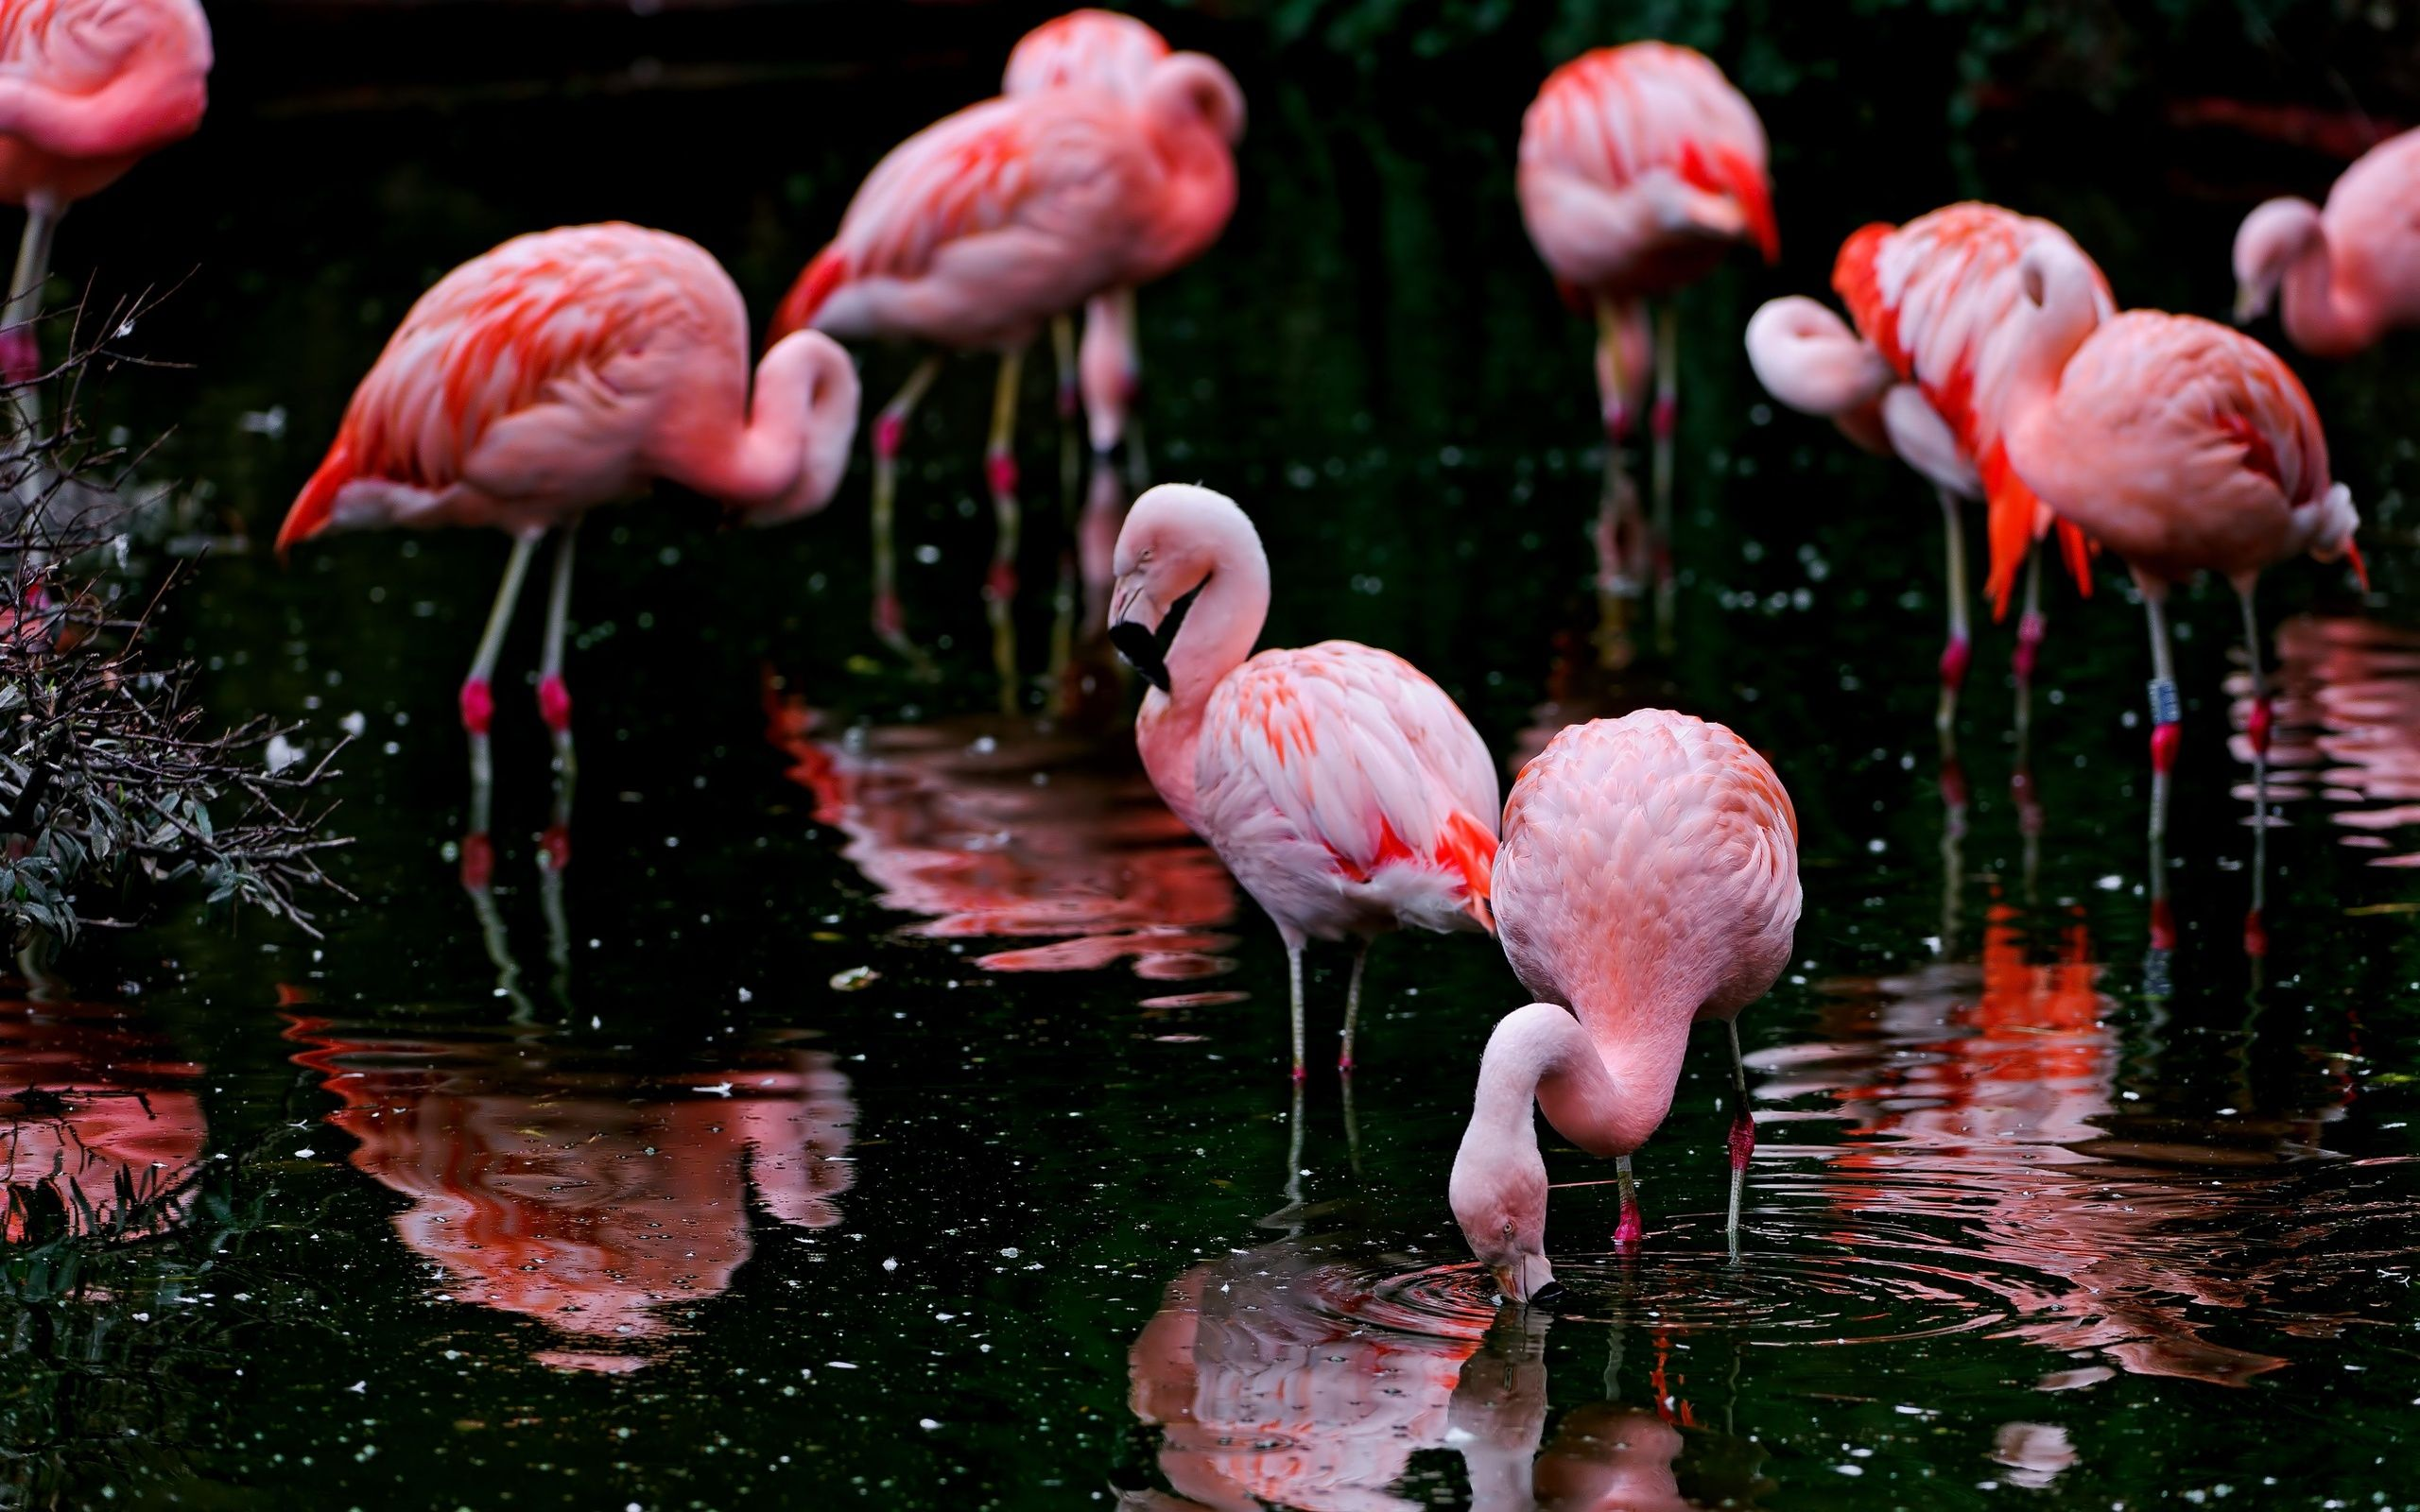 Flamingo_HD_background_wallpaper.jpg (2560×1600)